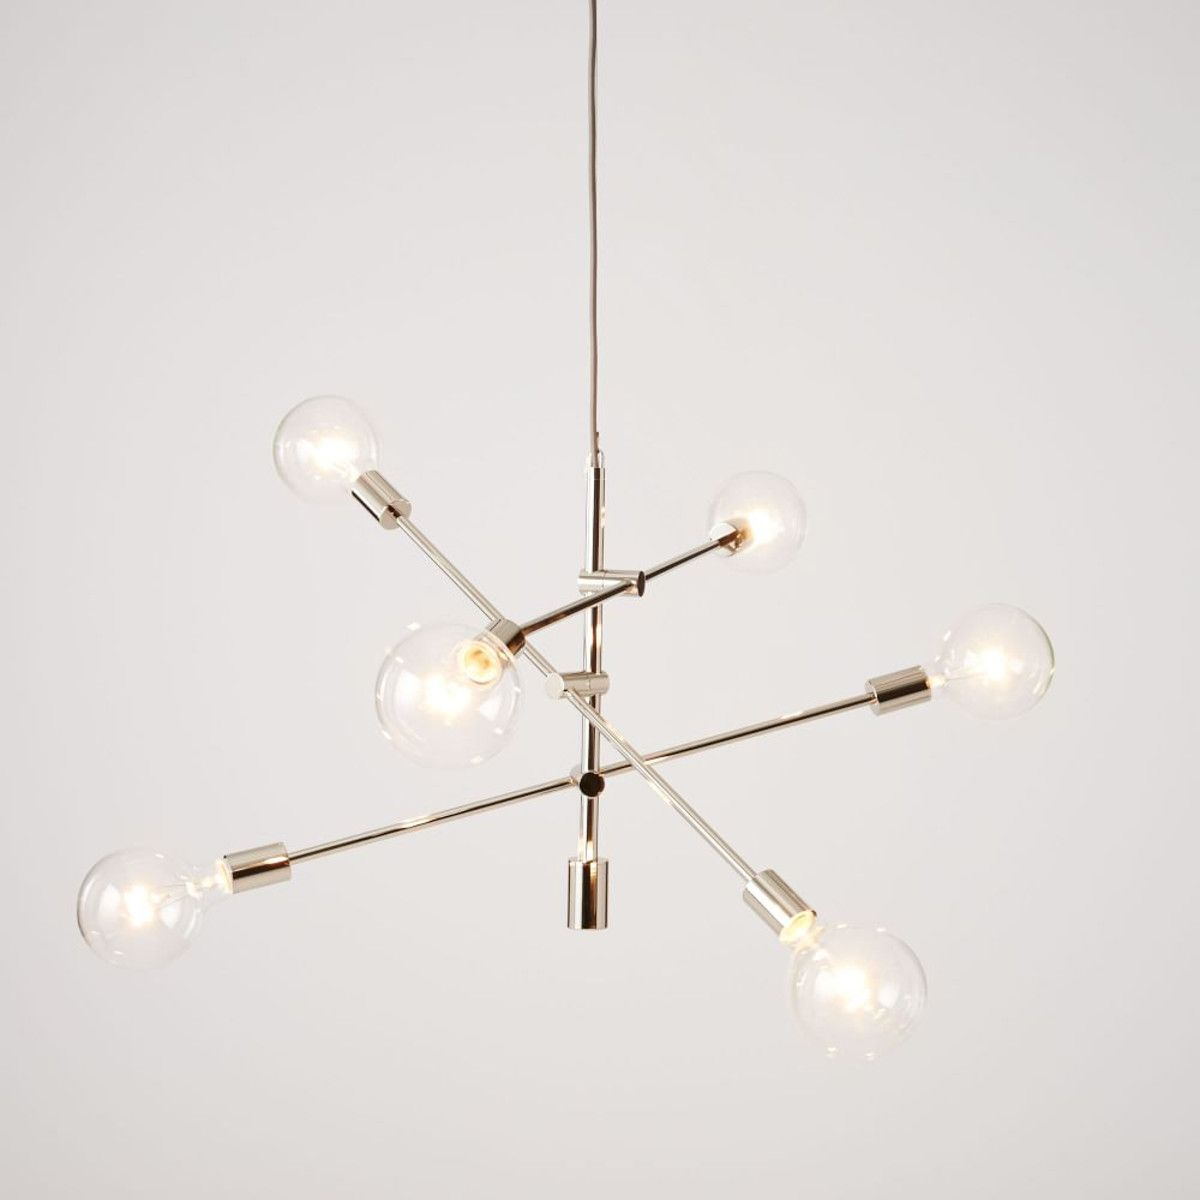 West Elm 319 Aus Mobile Pendant Brushed Nickel